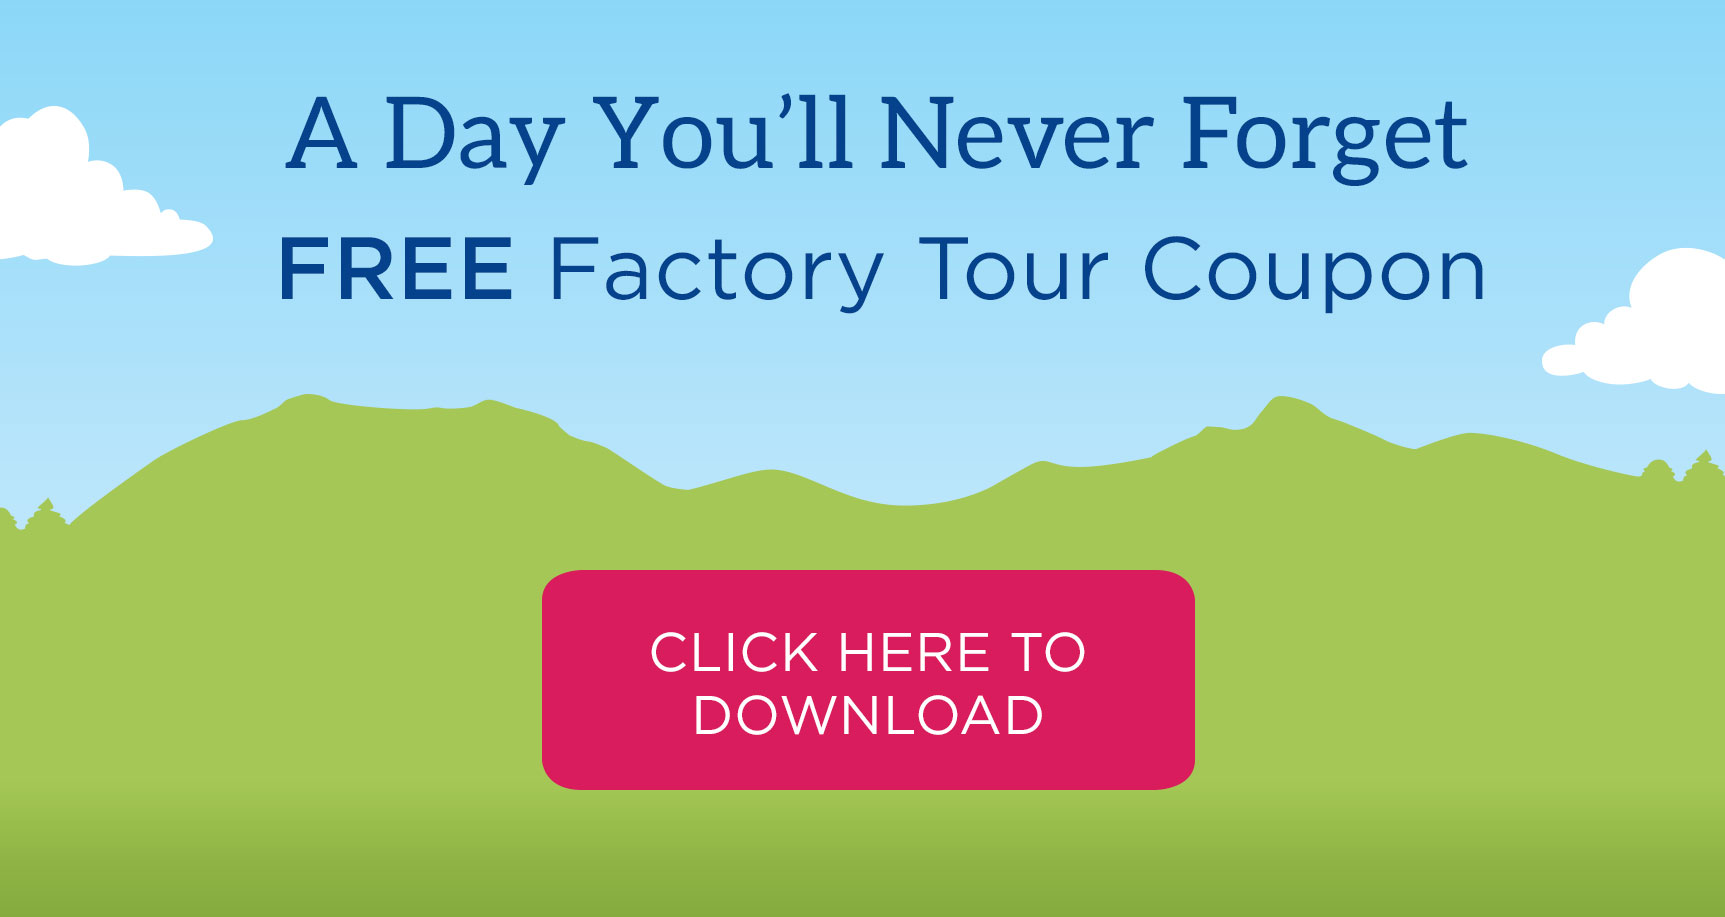 A Day You'll Never Forget. Free factory tour coupon - just show this coupon for a free tour! This coupon is good for the entire famly